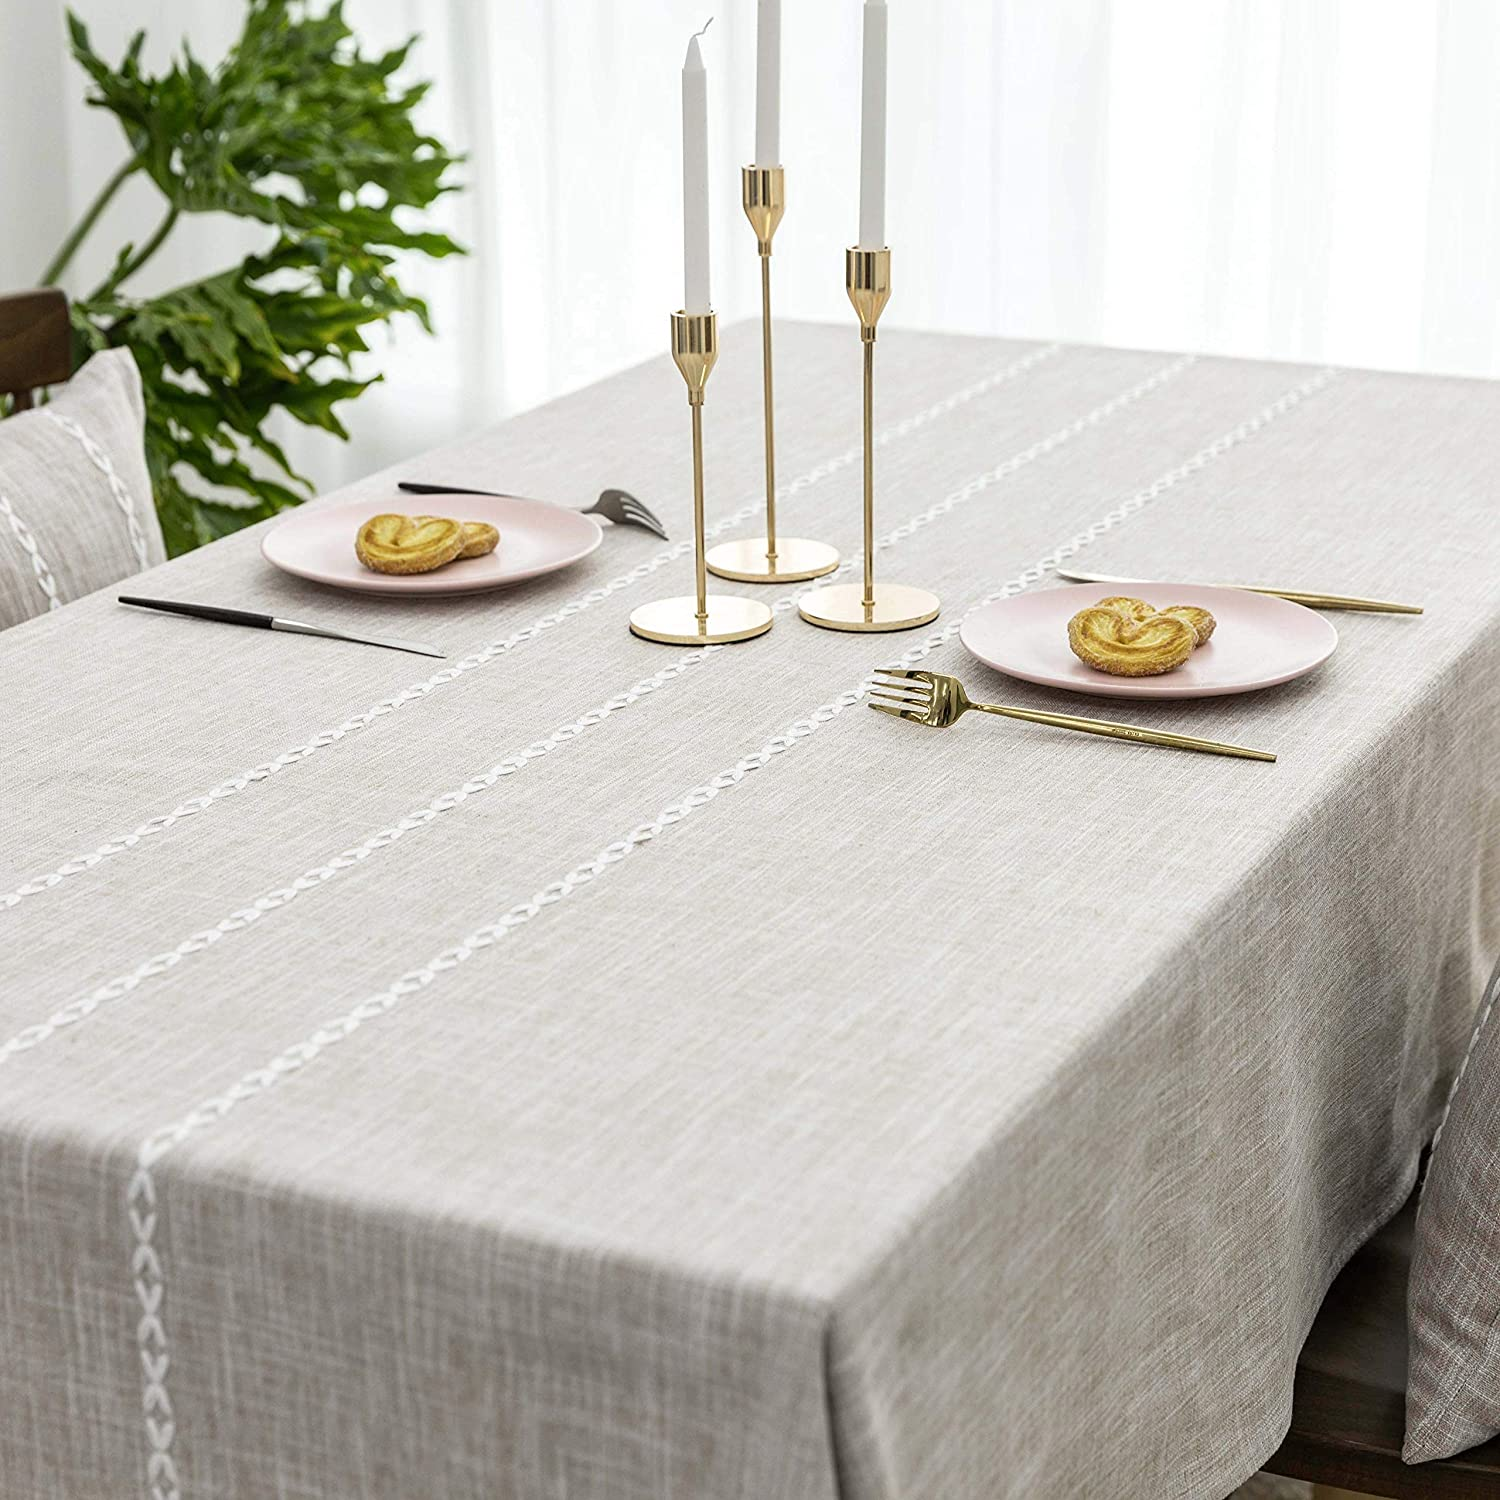 Home Brilliant Striped Tablecloth Faux Linen Table Cover for Kitchen Dinning Indoor Outdoor Table Decoration Buffet Picnic Fall Decorative Tabletop(Square, 52 x 102 Inch, Light Linen)